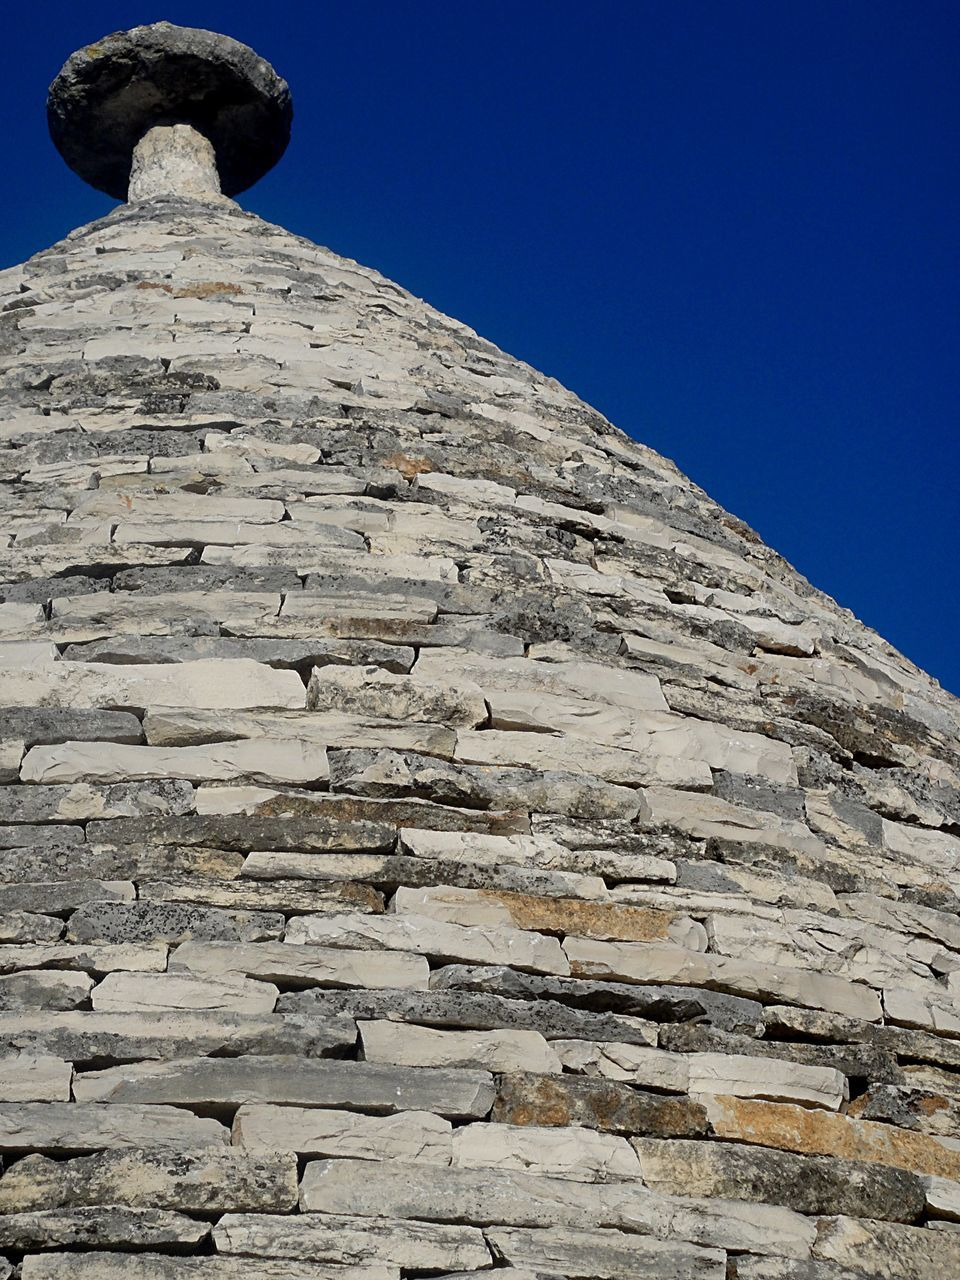 low angle view, clear sky, mountain, no people, outdoors, day, nature, architecture, ancient civilization, sky